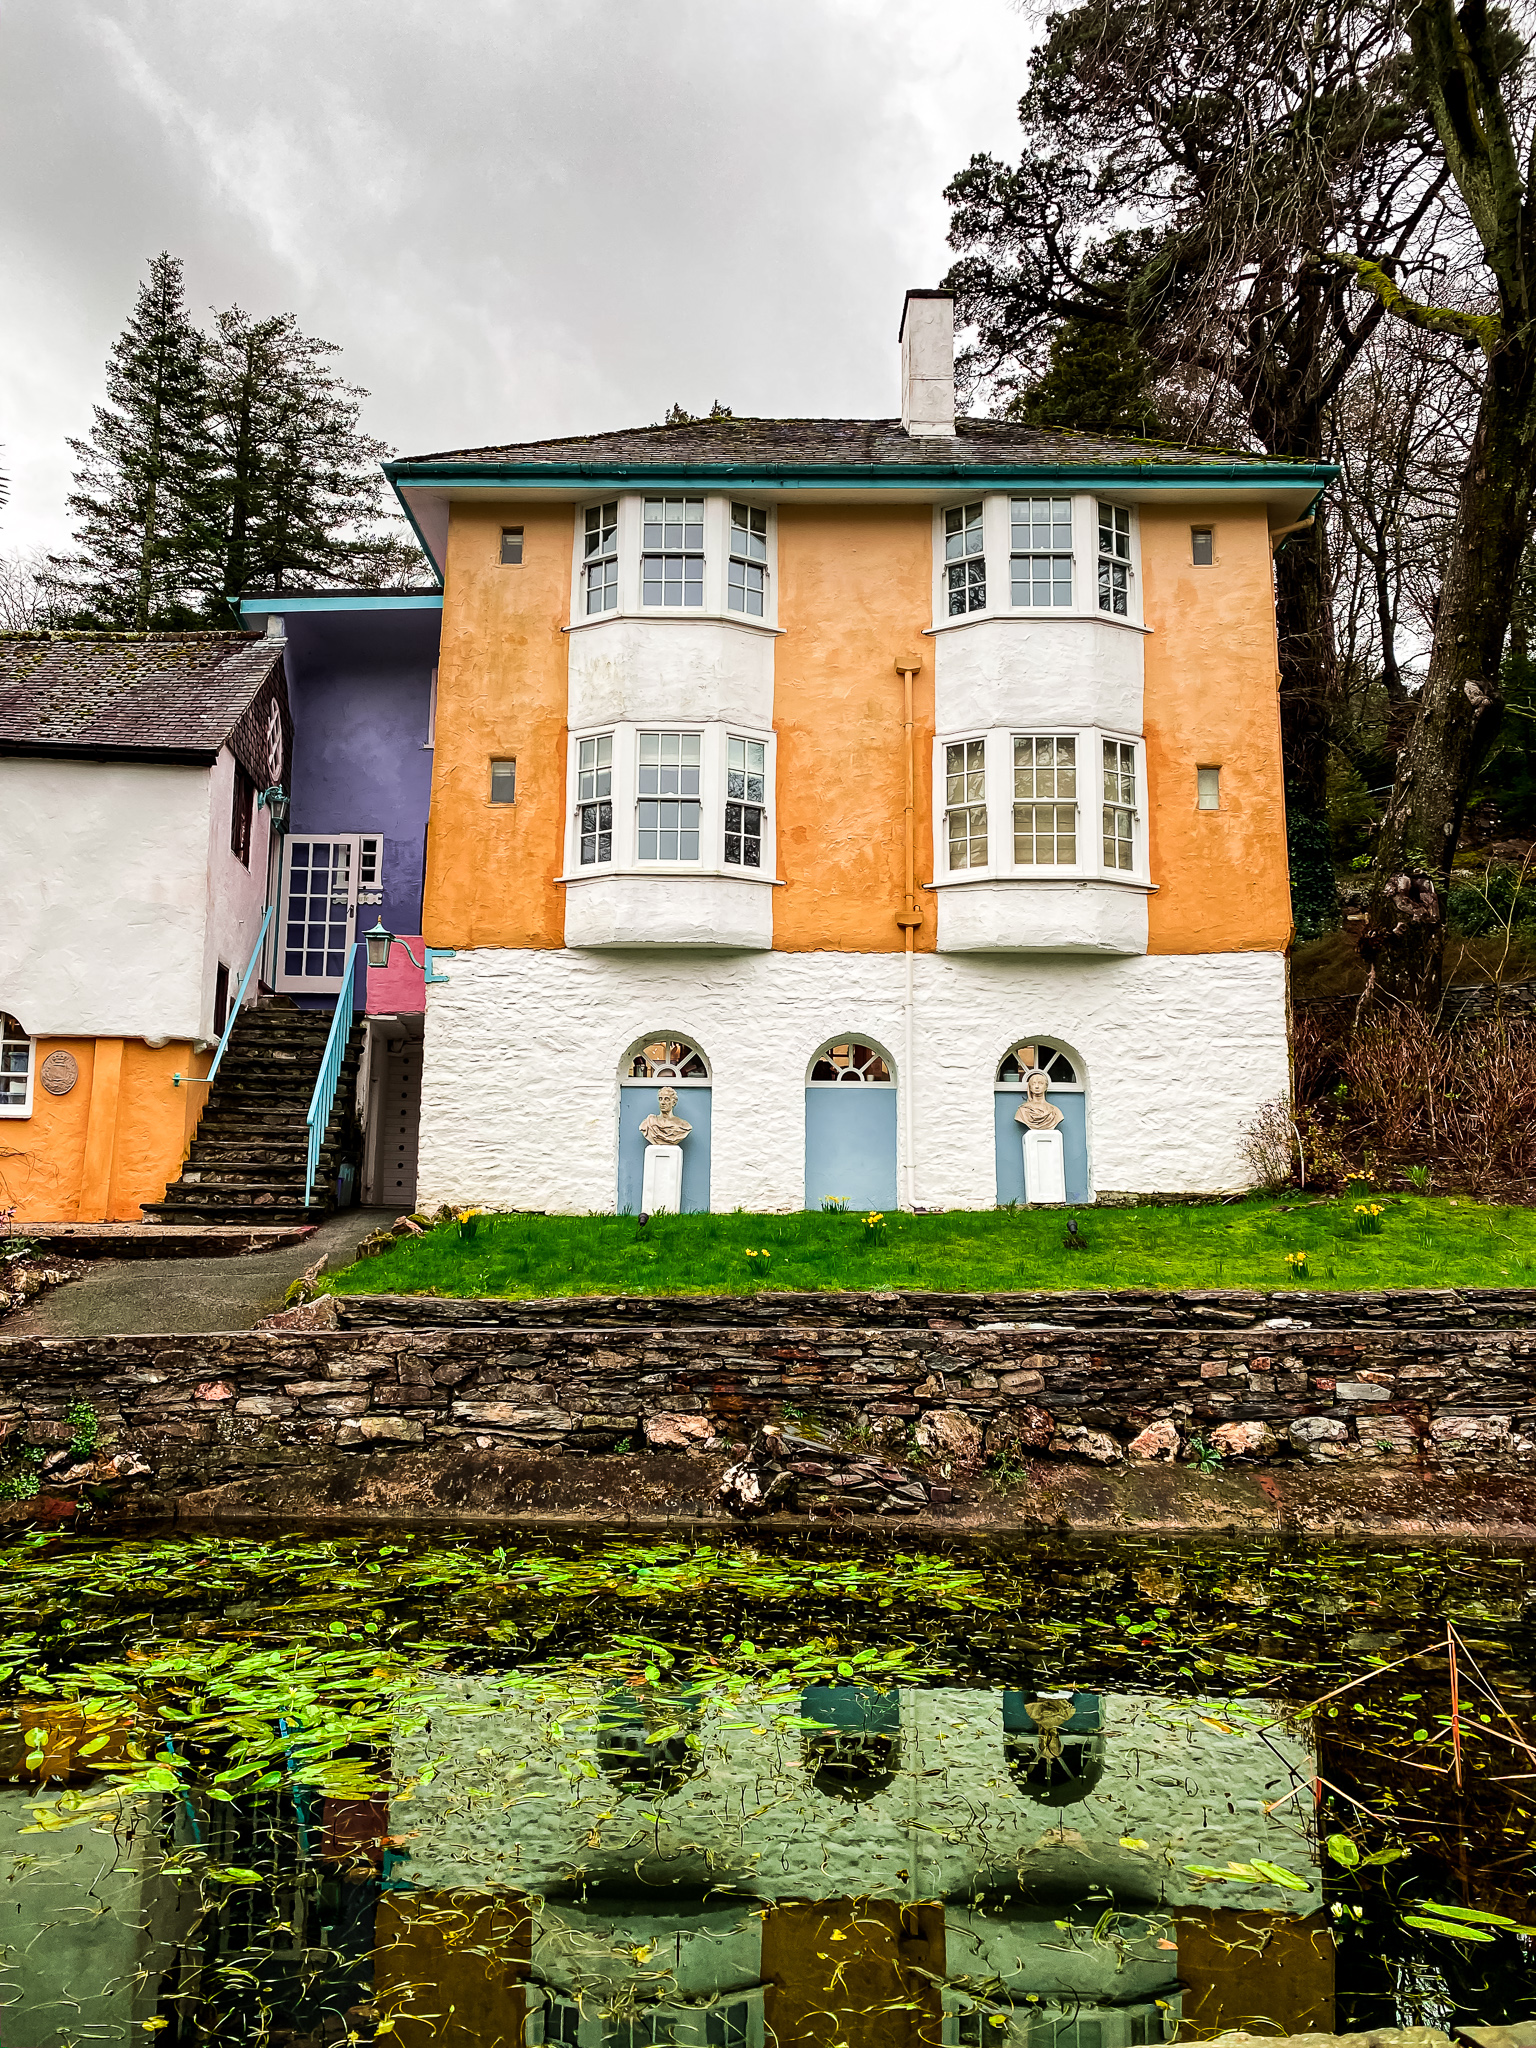 Portmeirion Day Trip Guide